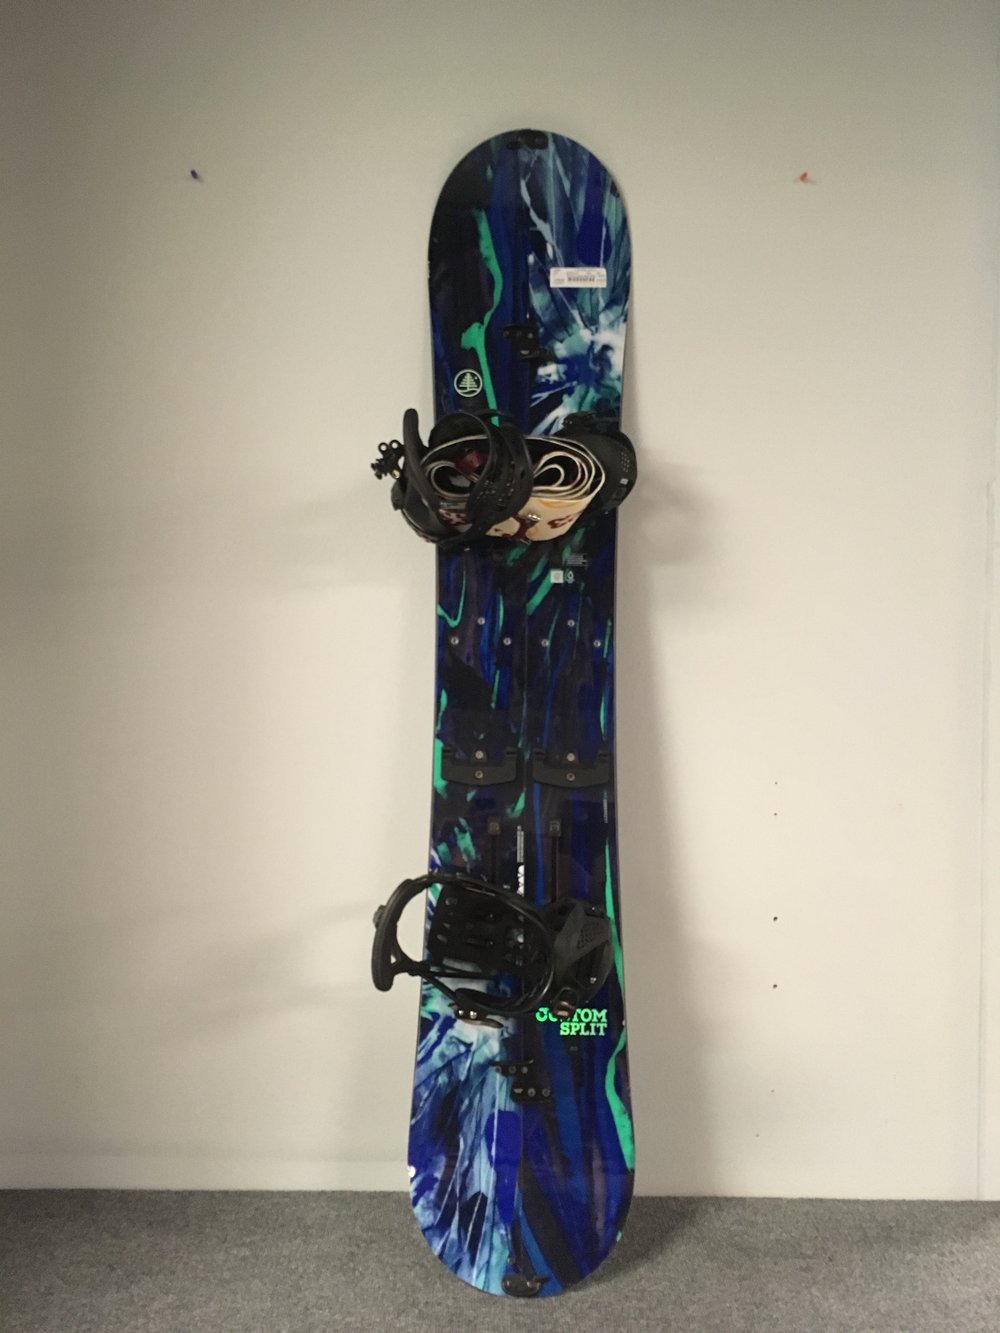 Find the powder with this fully outfitted 2016 160 Burton Custom Splitboard! It comes complete with Burton hardware,  Burton Hitchhiker bindings, and Burton/G3 skins. We have this $1500 setup priced at $799!